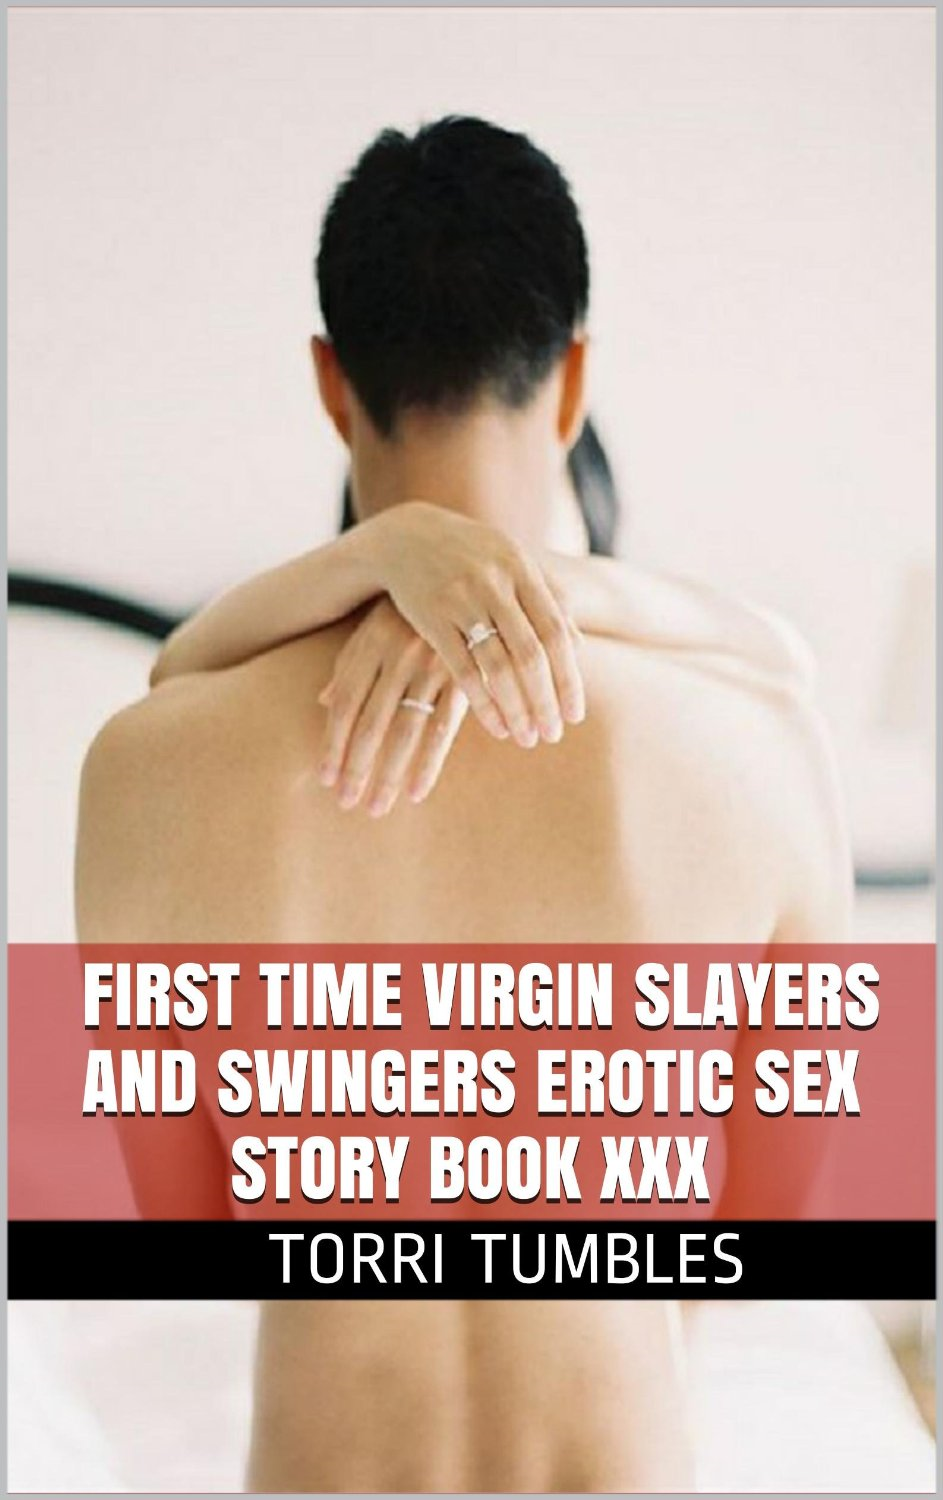 125 books of TORRI TUMBLES First Time Virgin Slayers and Swingers. First Time Virgin Slayers and Swingers Erotic Sex Story Book XXX